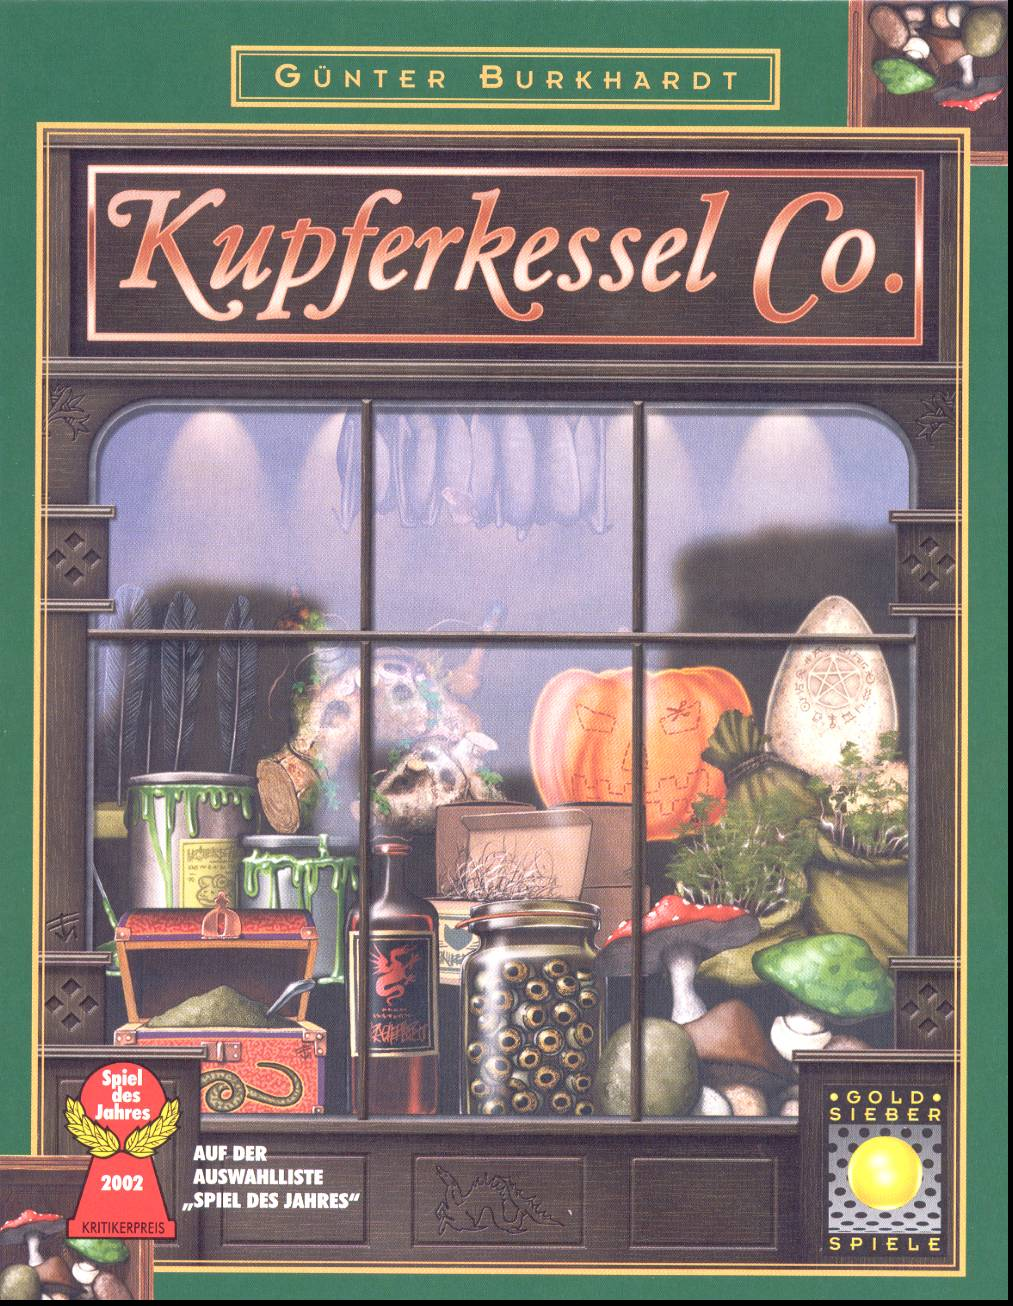 kupferkessel-co